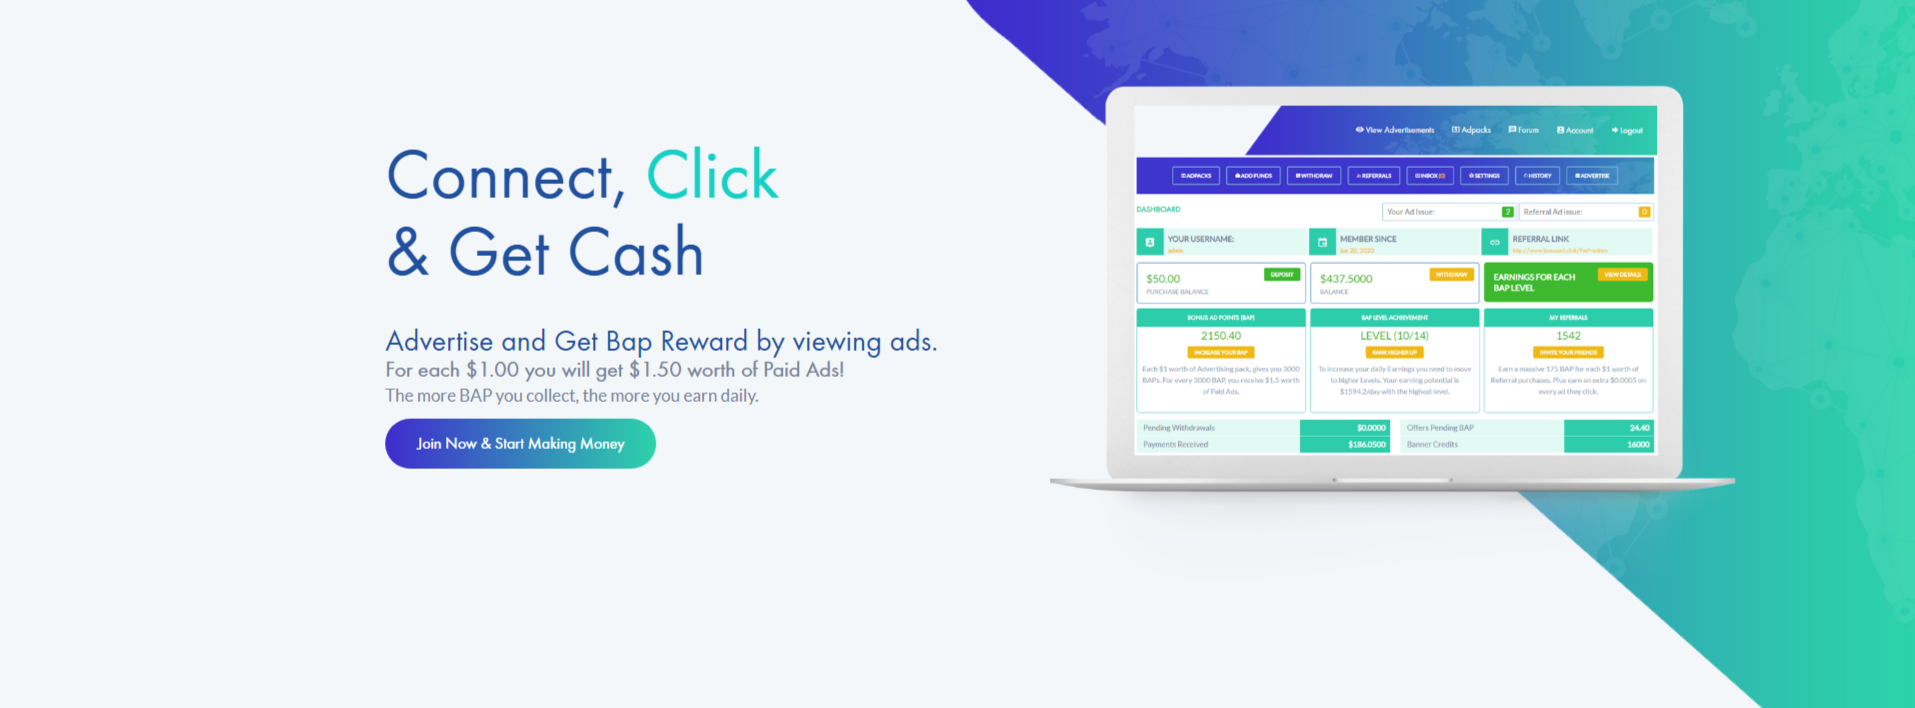 What Is bonusad.click – Is bonusad.click Scam or Paying? reviews